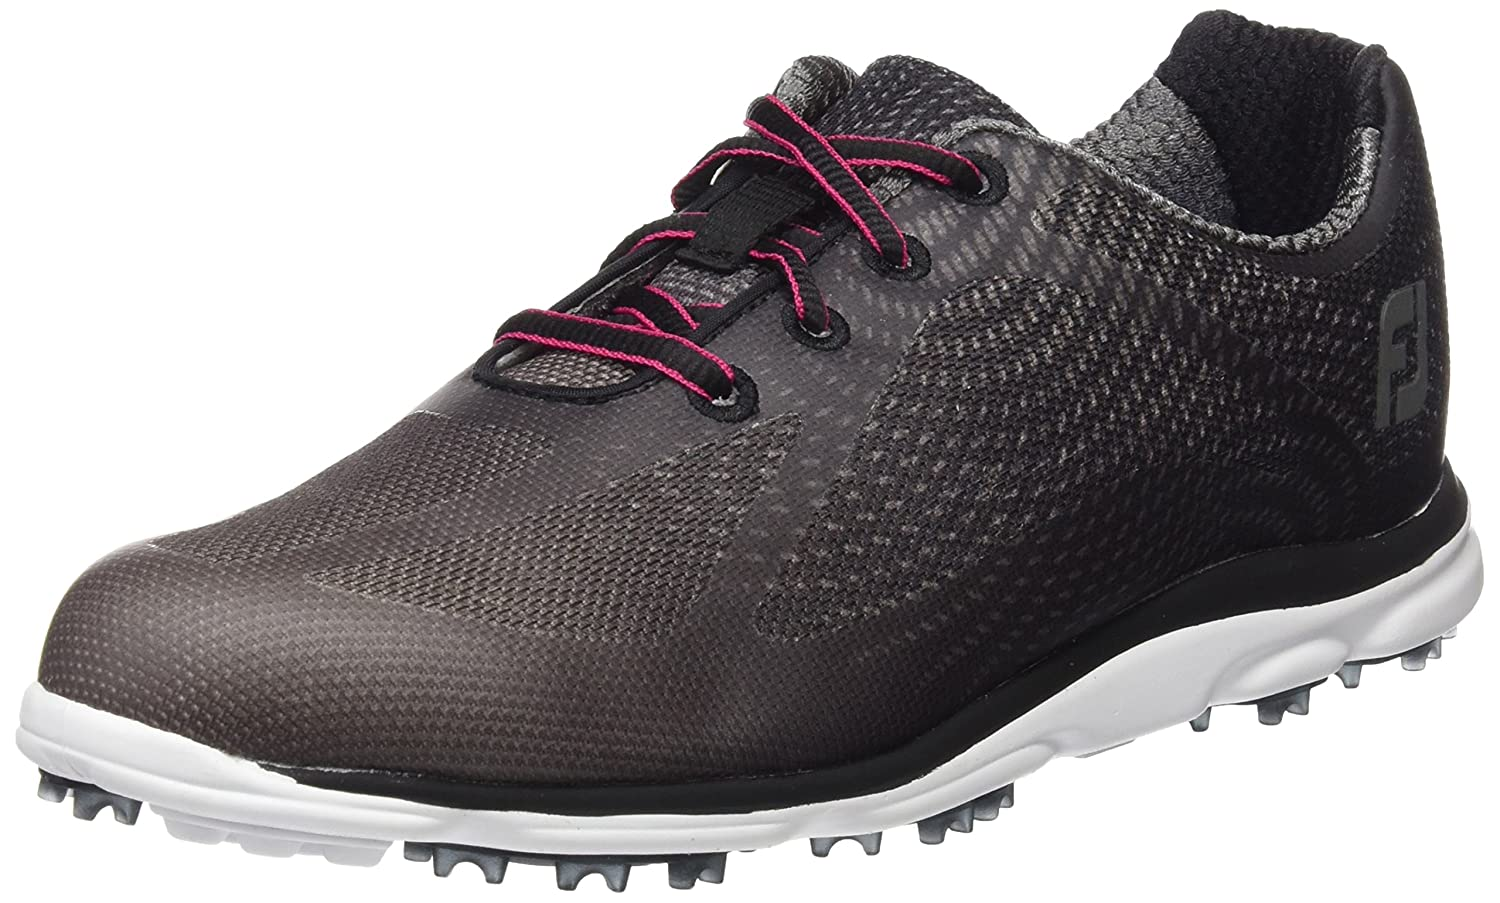 FootJoy Empower Spikeless Golf Shoes Closeout Women B014HNF8VG 6.5 W|Negro / Antracita